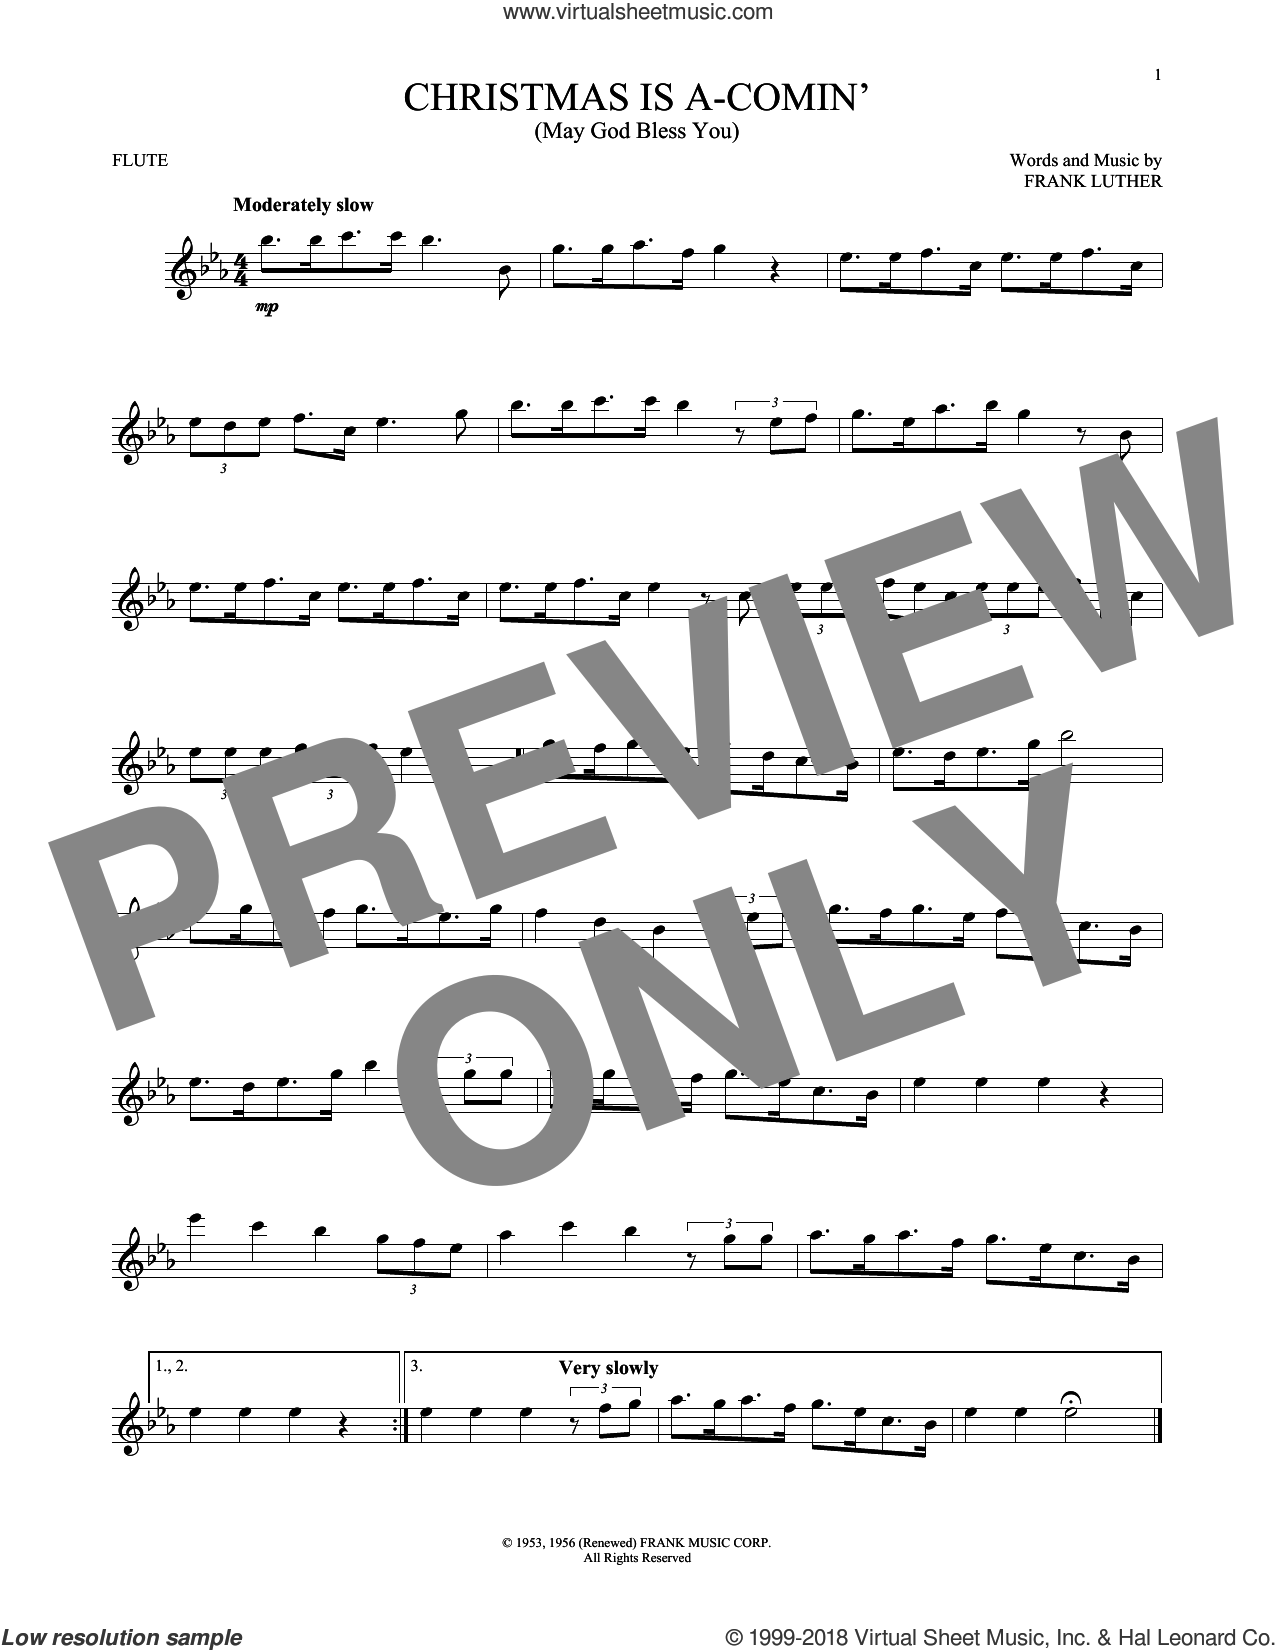 Christmas Is A-Comin' (May God Bless You) sheet music for flute solo by Frank Luther, intermediate skill level